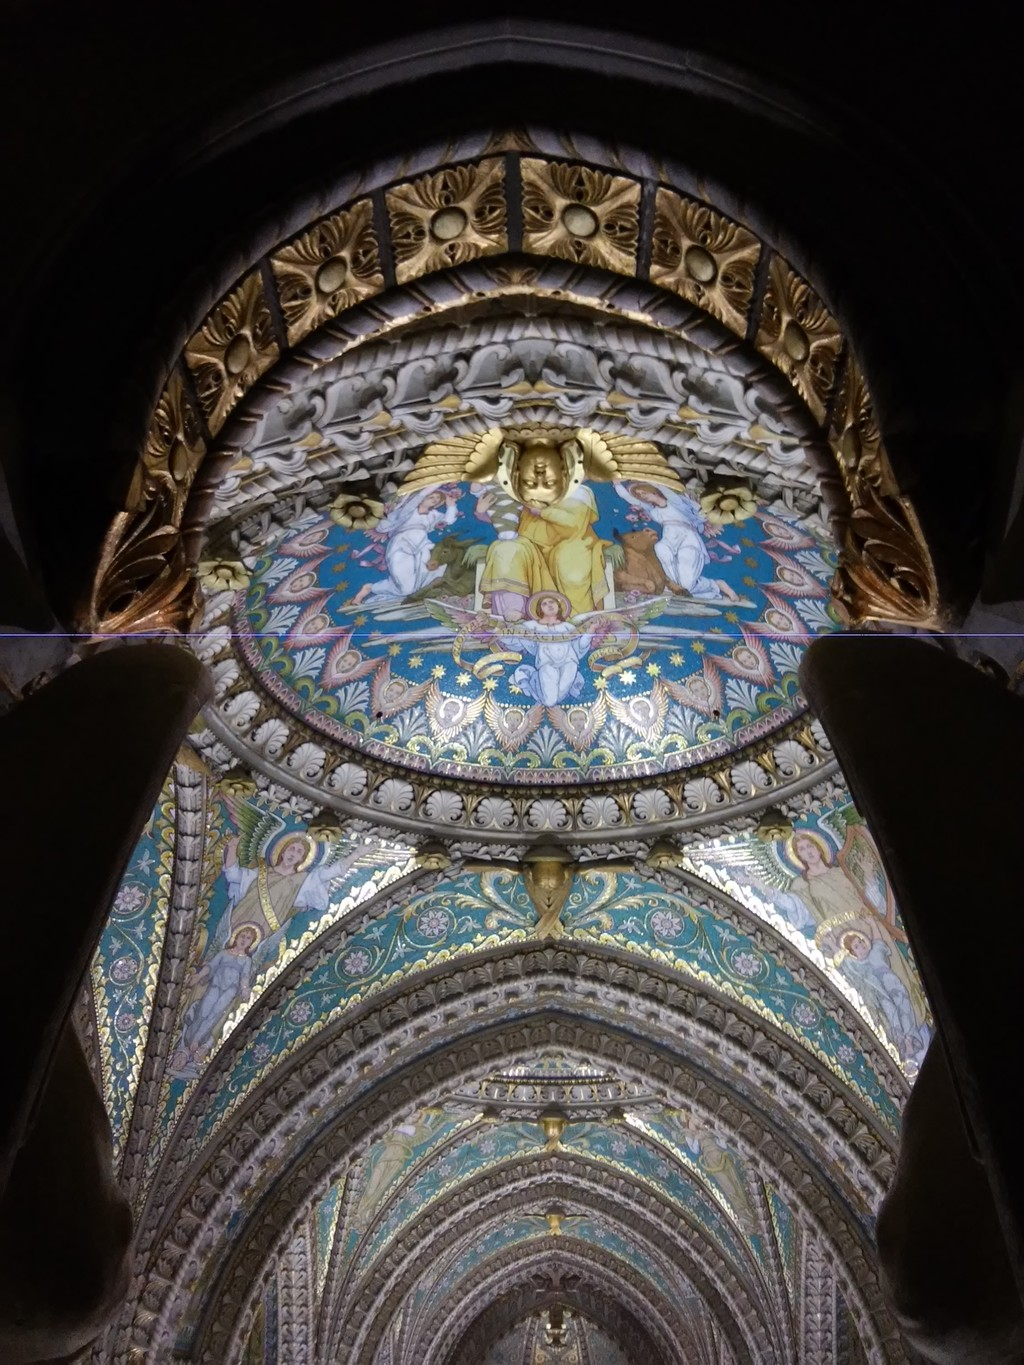 An extraordinary basilica, full of history and with great views of Lyon